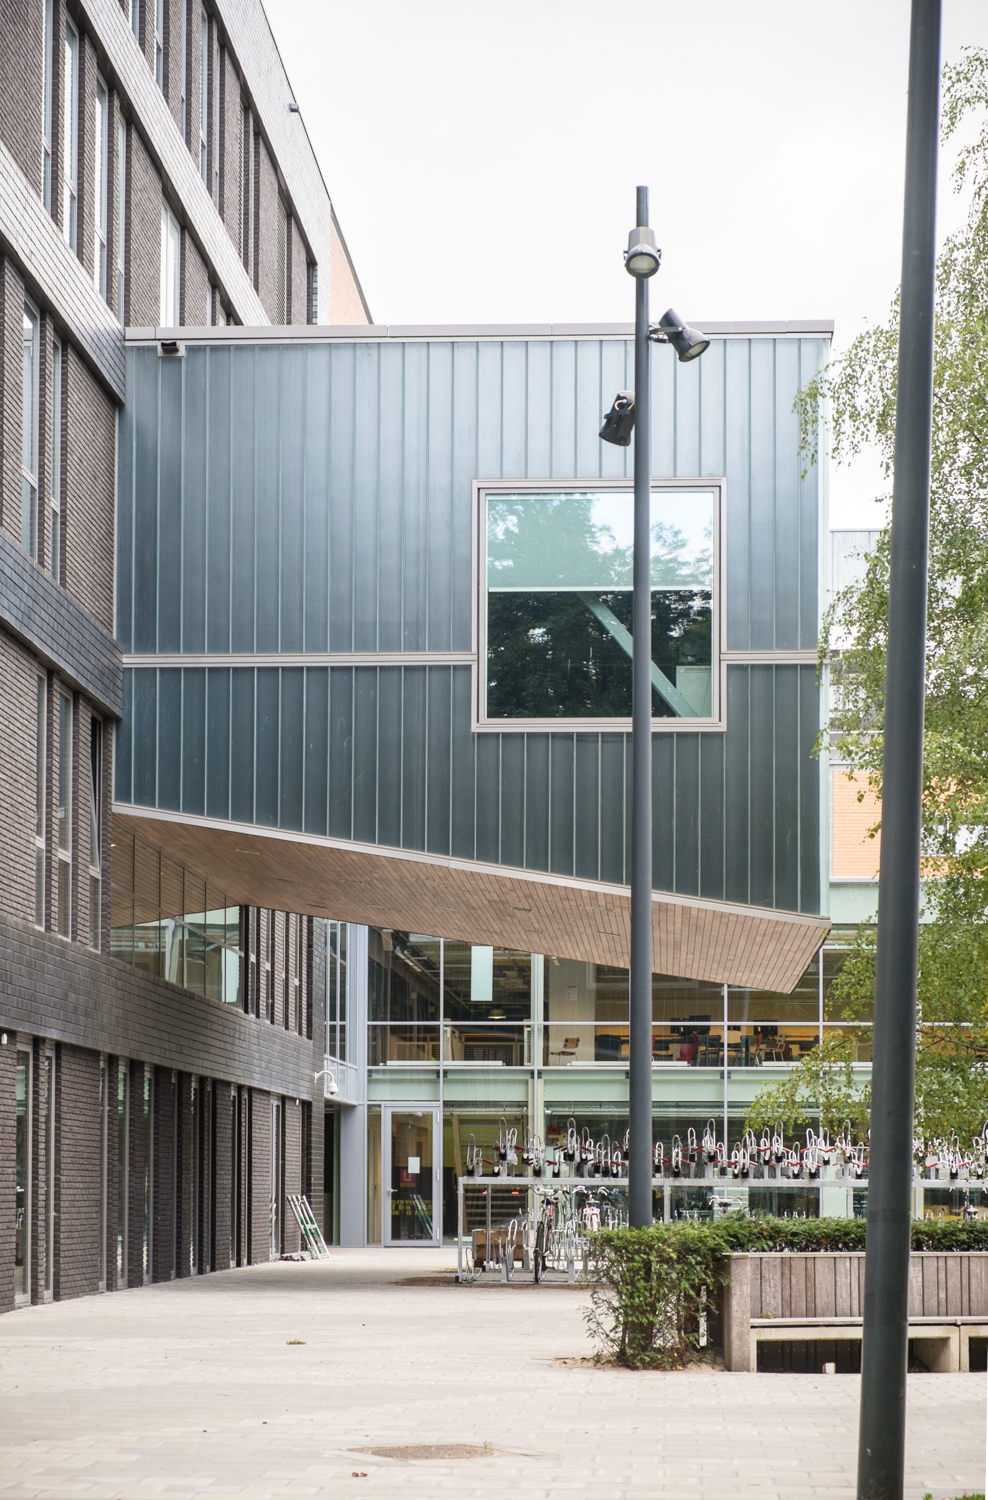 Facade #6: Cantilever series #1, dorm of Utrecht Highschool.